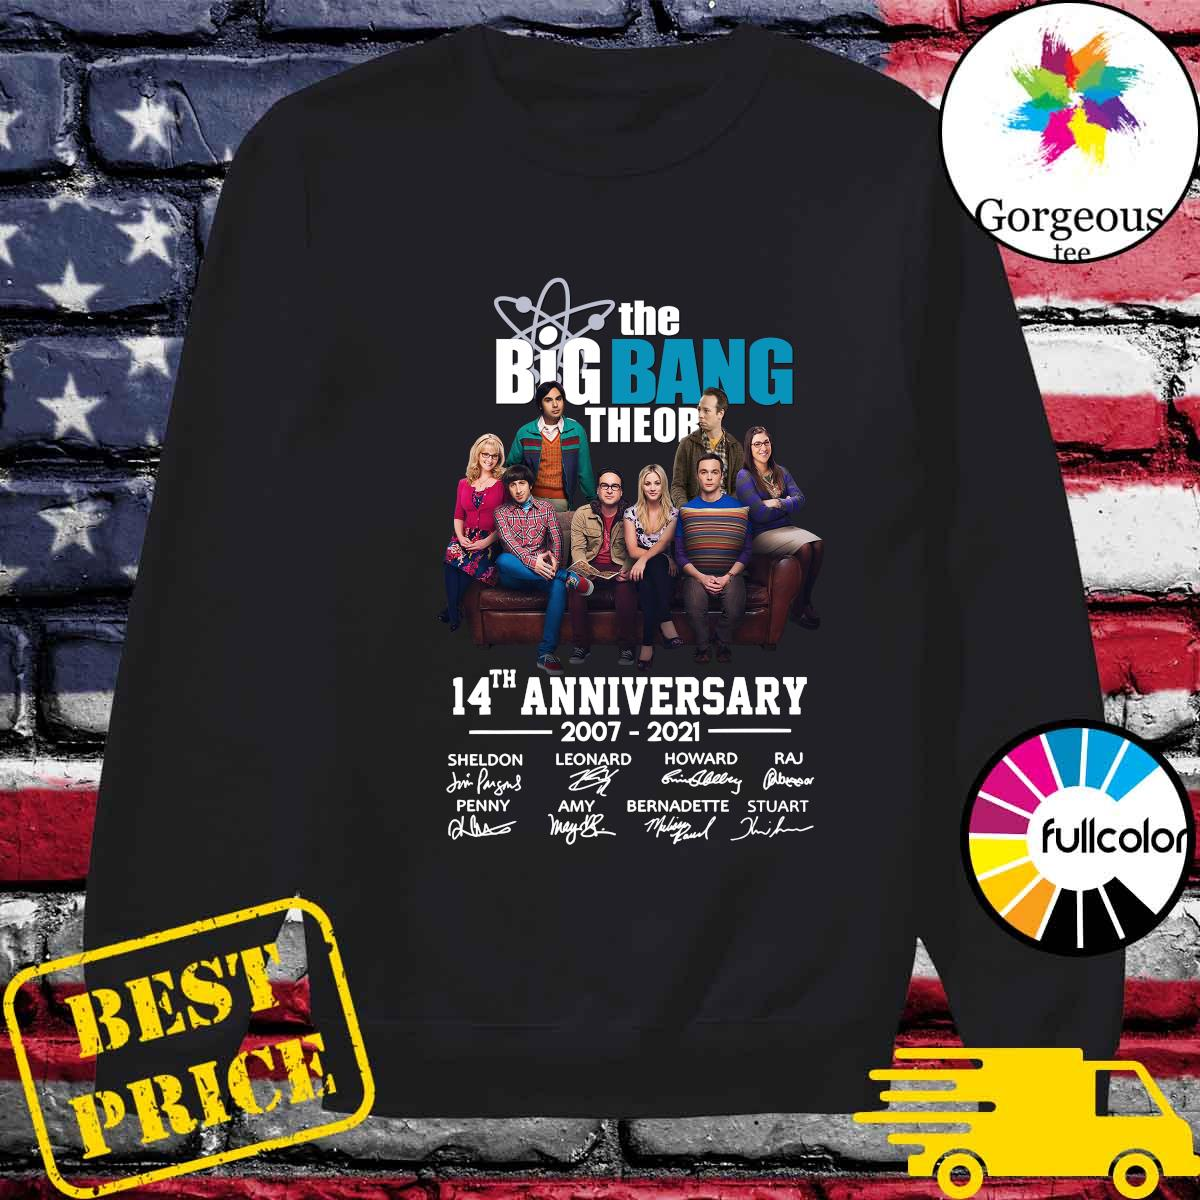 The Big Bang Theory 14th Anniversary 2007 2021 Signatures Shirt Sweater